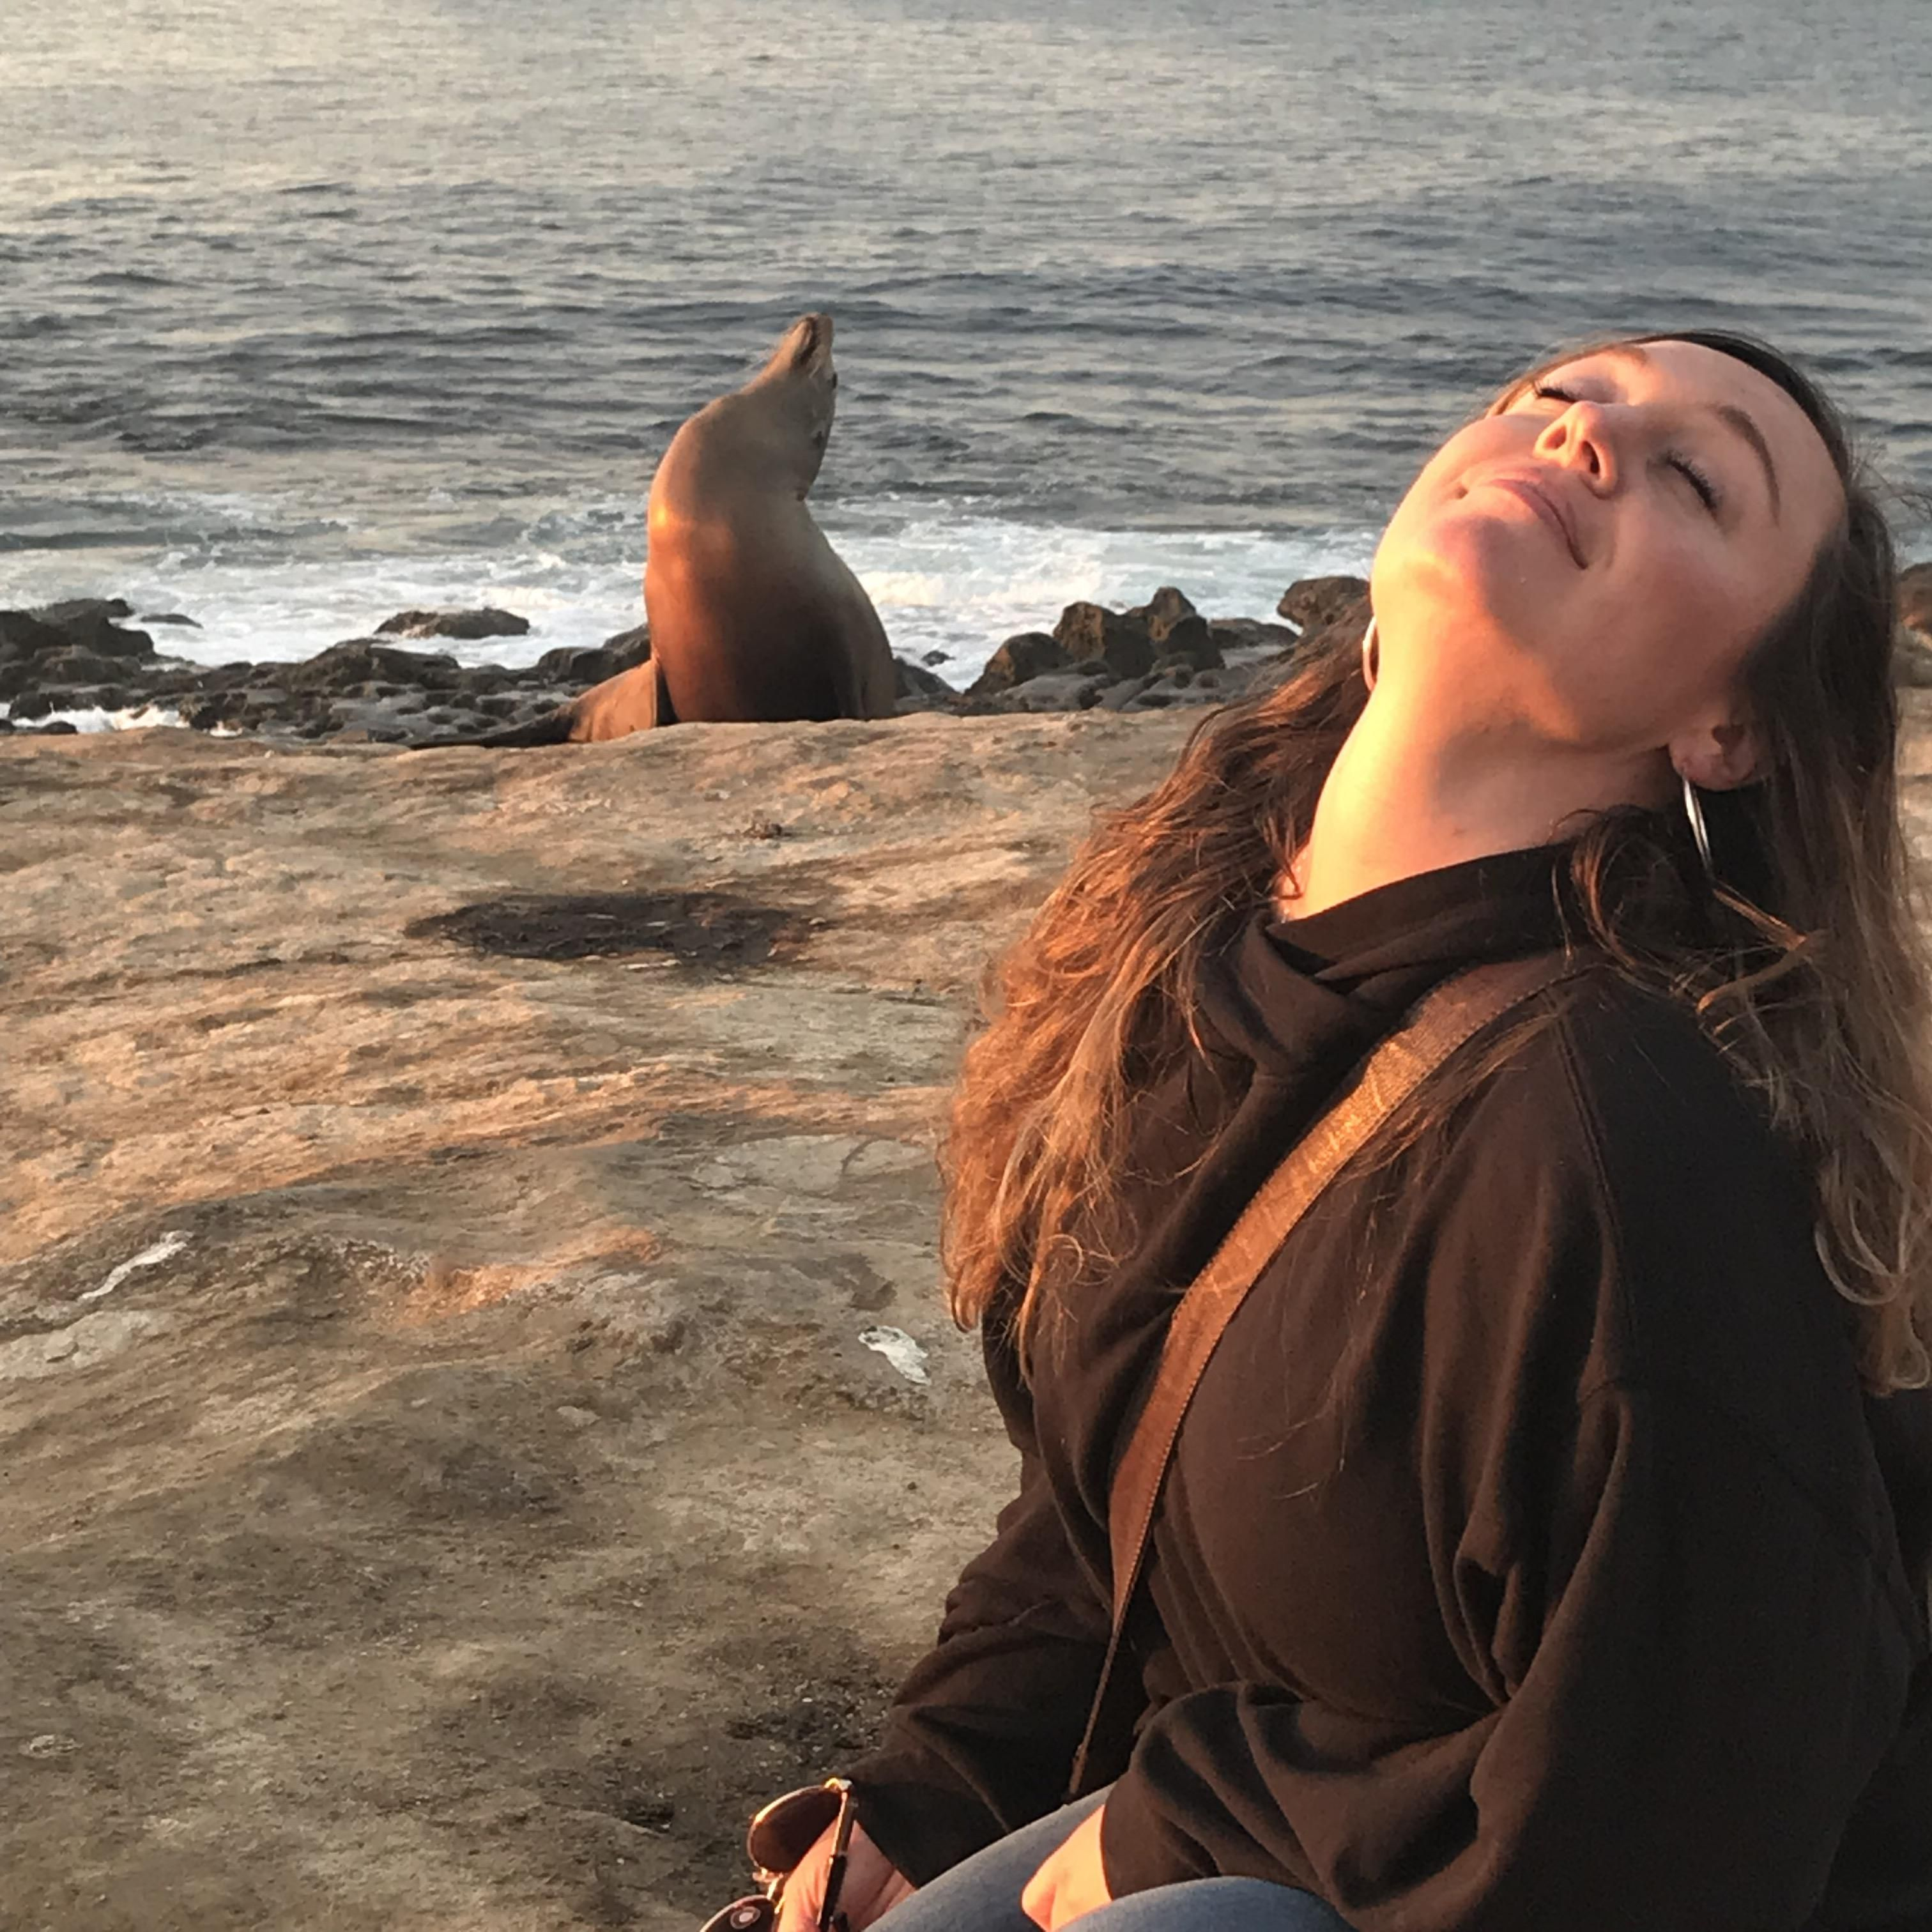 Sometimes you just need to sit in the sun and look fabulous. This sea lion gets it.